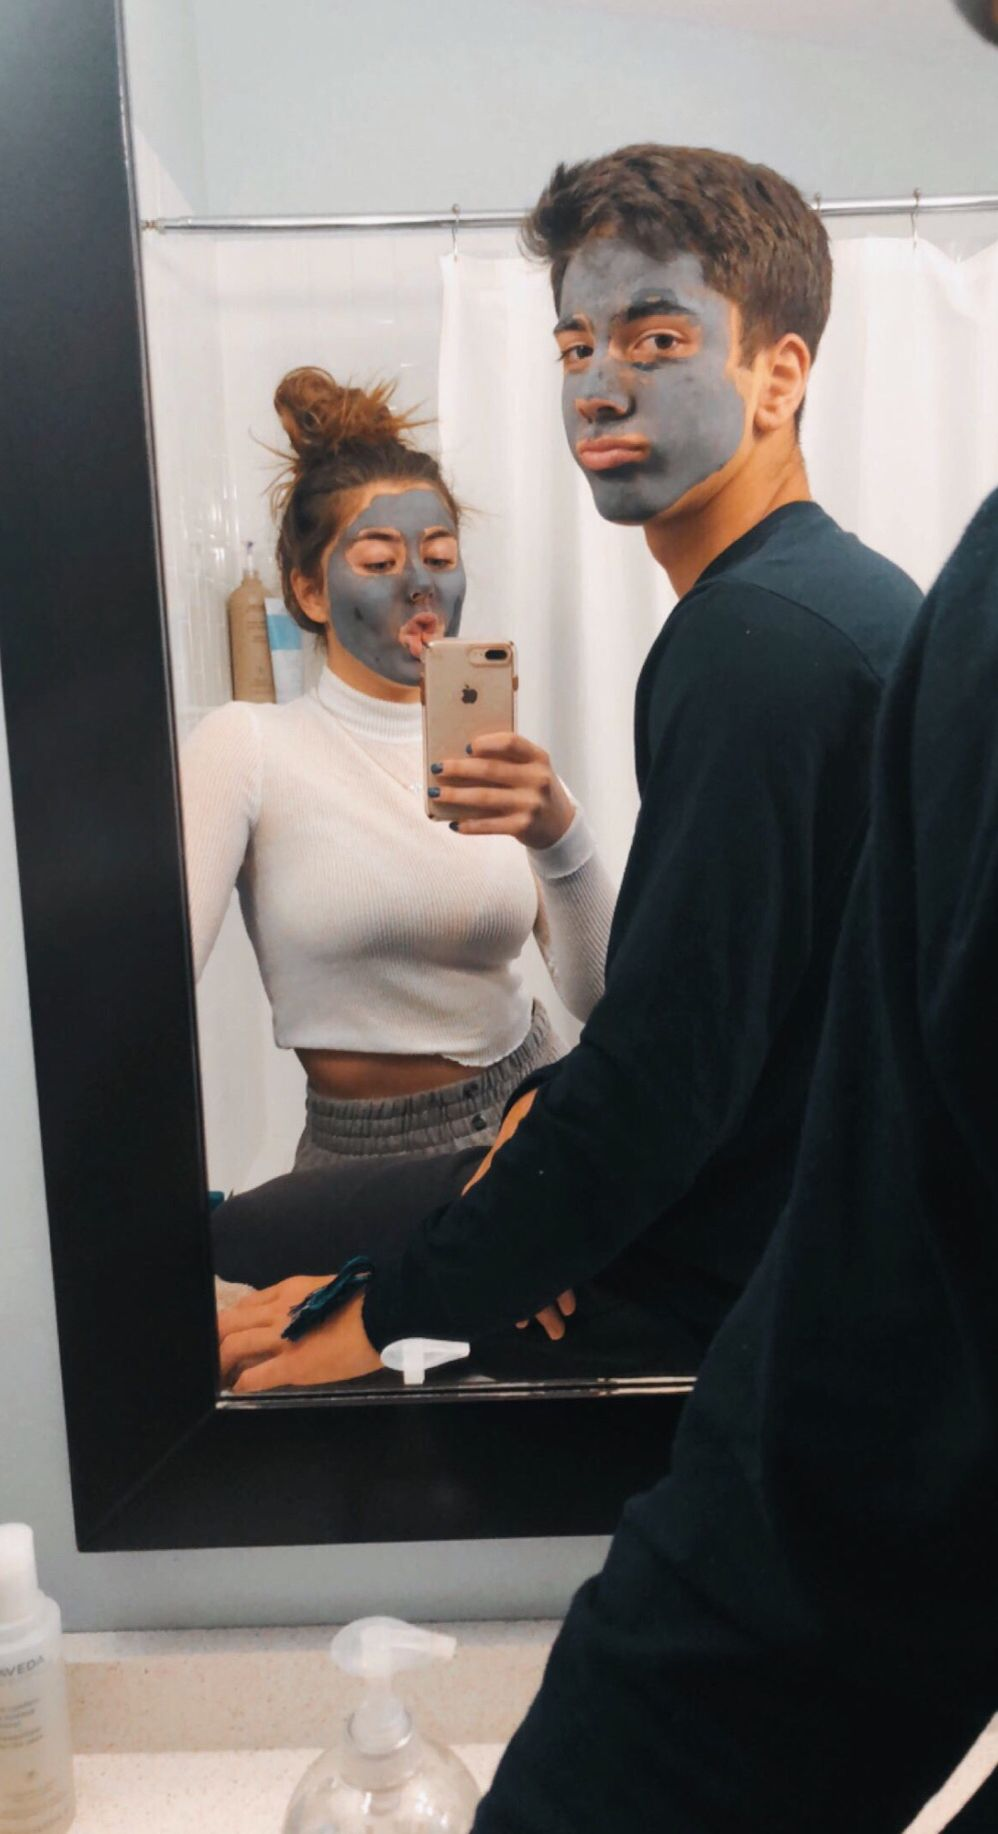 Pin By Tia Messaike On Face Masks With Images Cute Couples